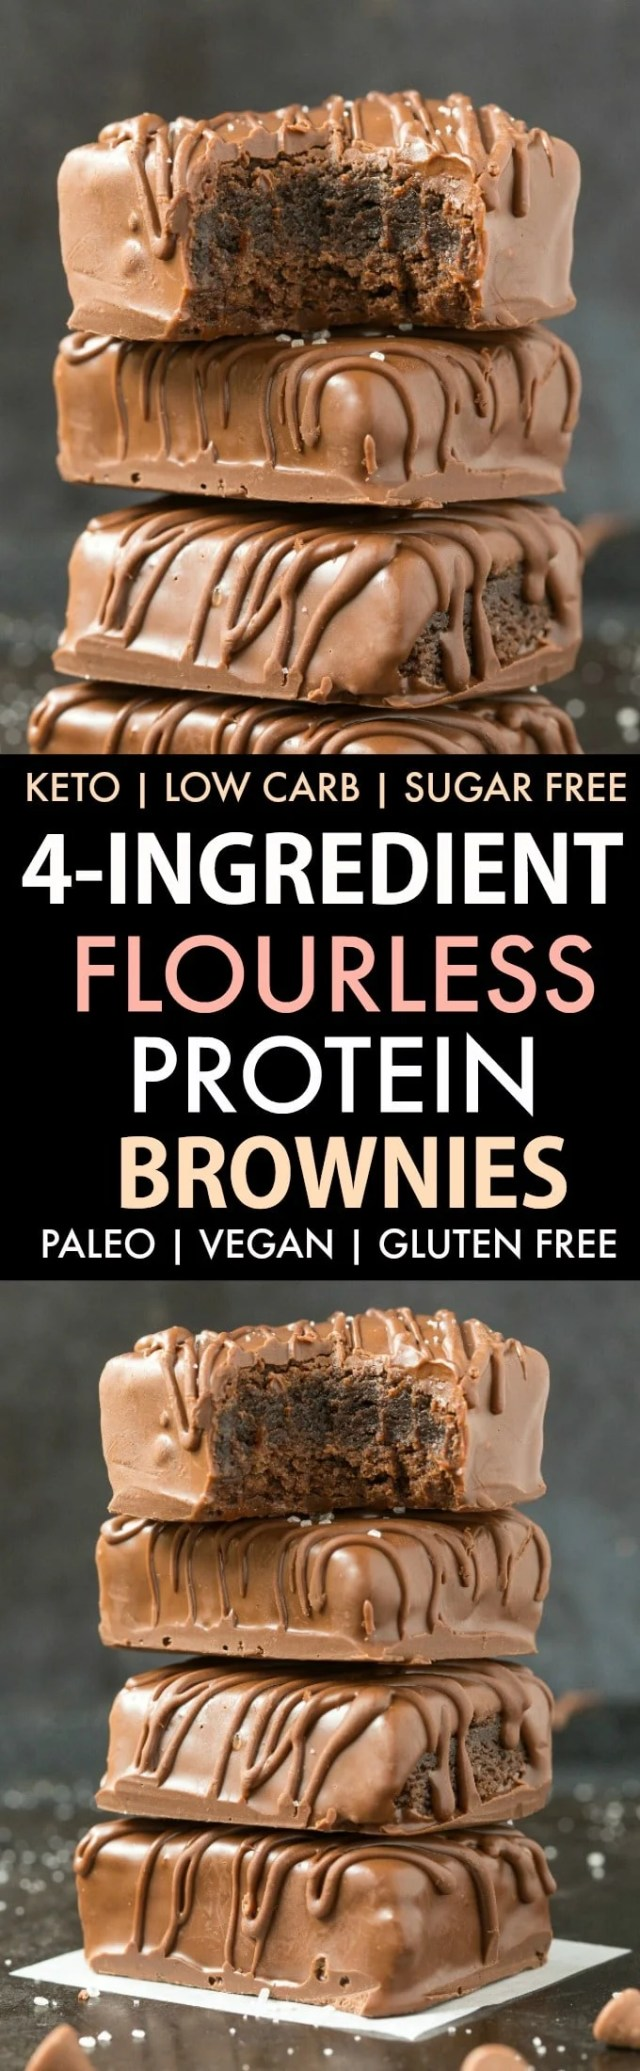 Flourless 4-Ingredient Keto Protein Brownies in a collage